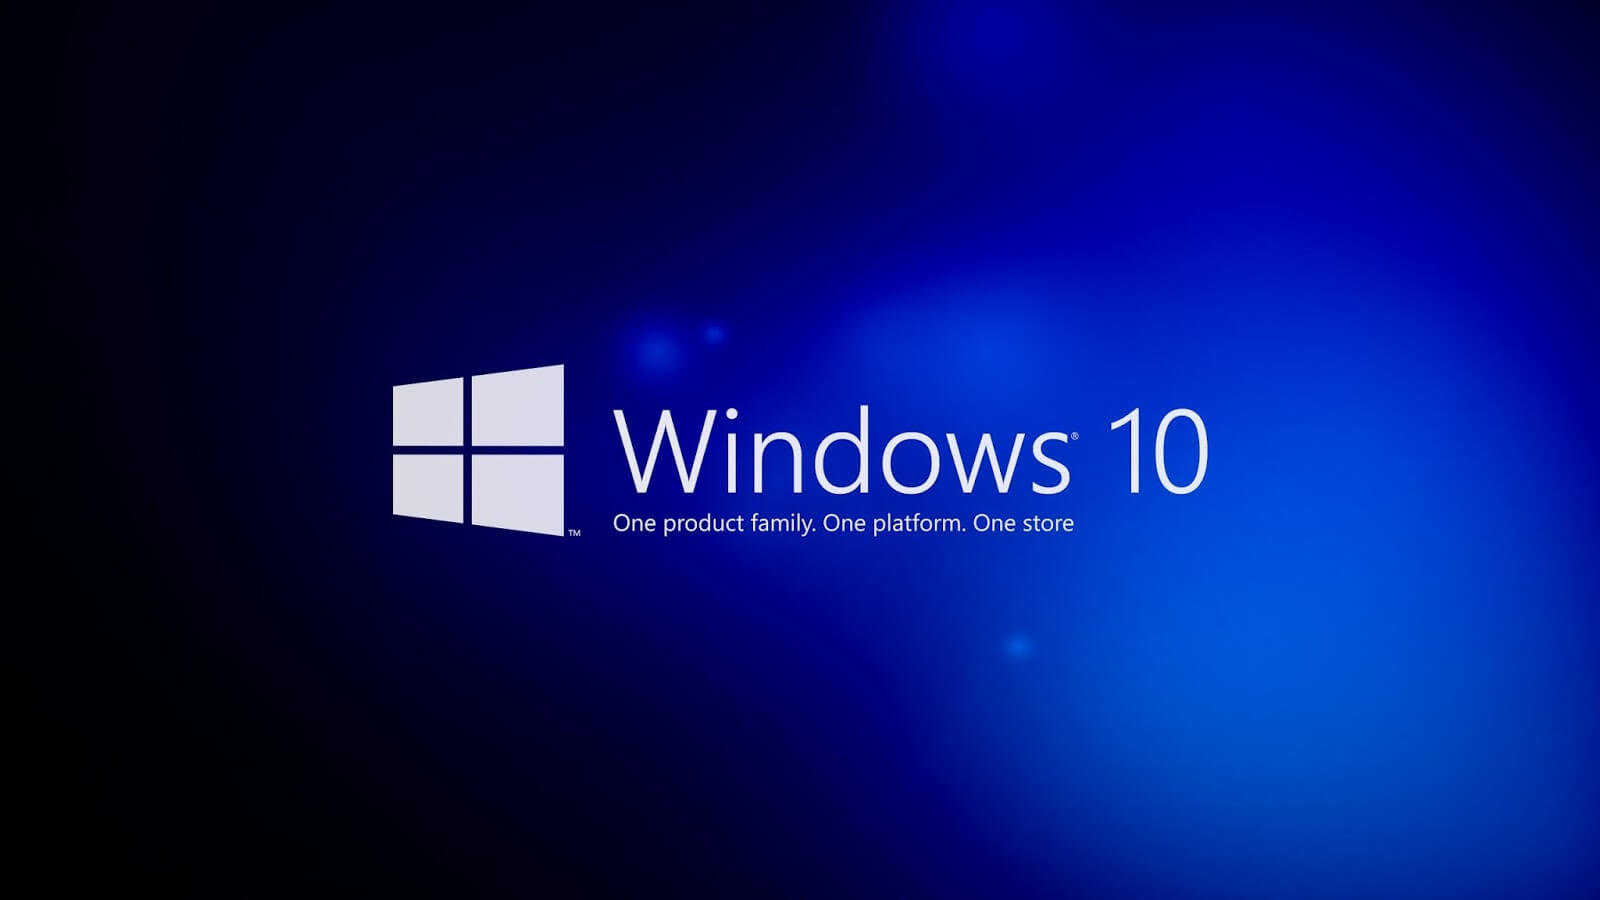 Download the official Windows 10 Full ISO from Microsoft (Google Drive Link)